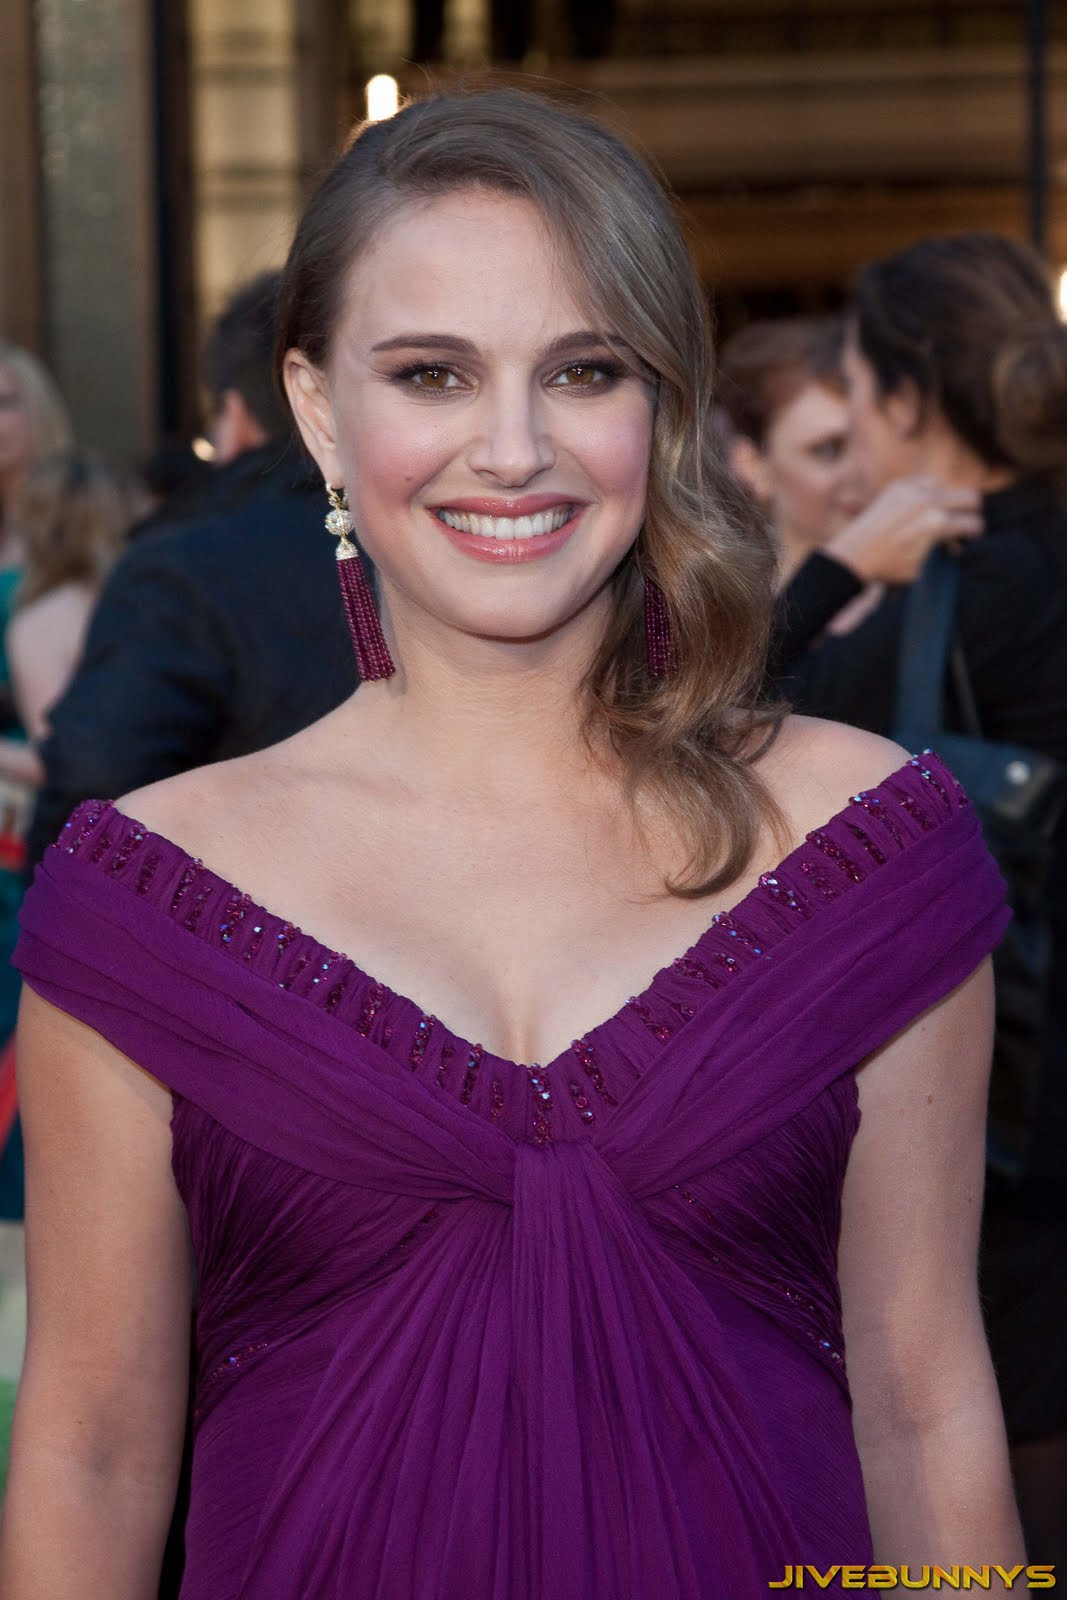 Natalie portman pussy nude pictures, images and galleries ...